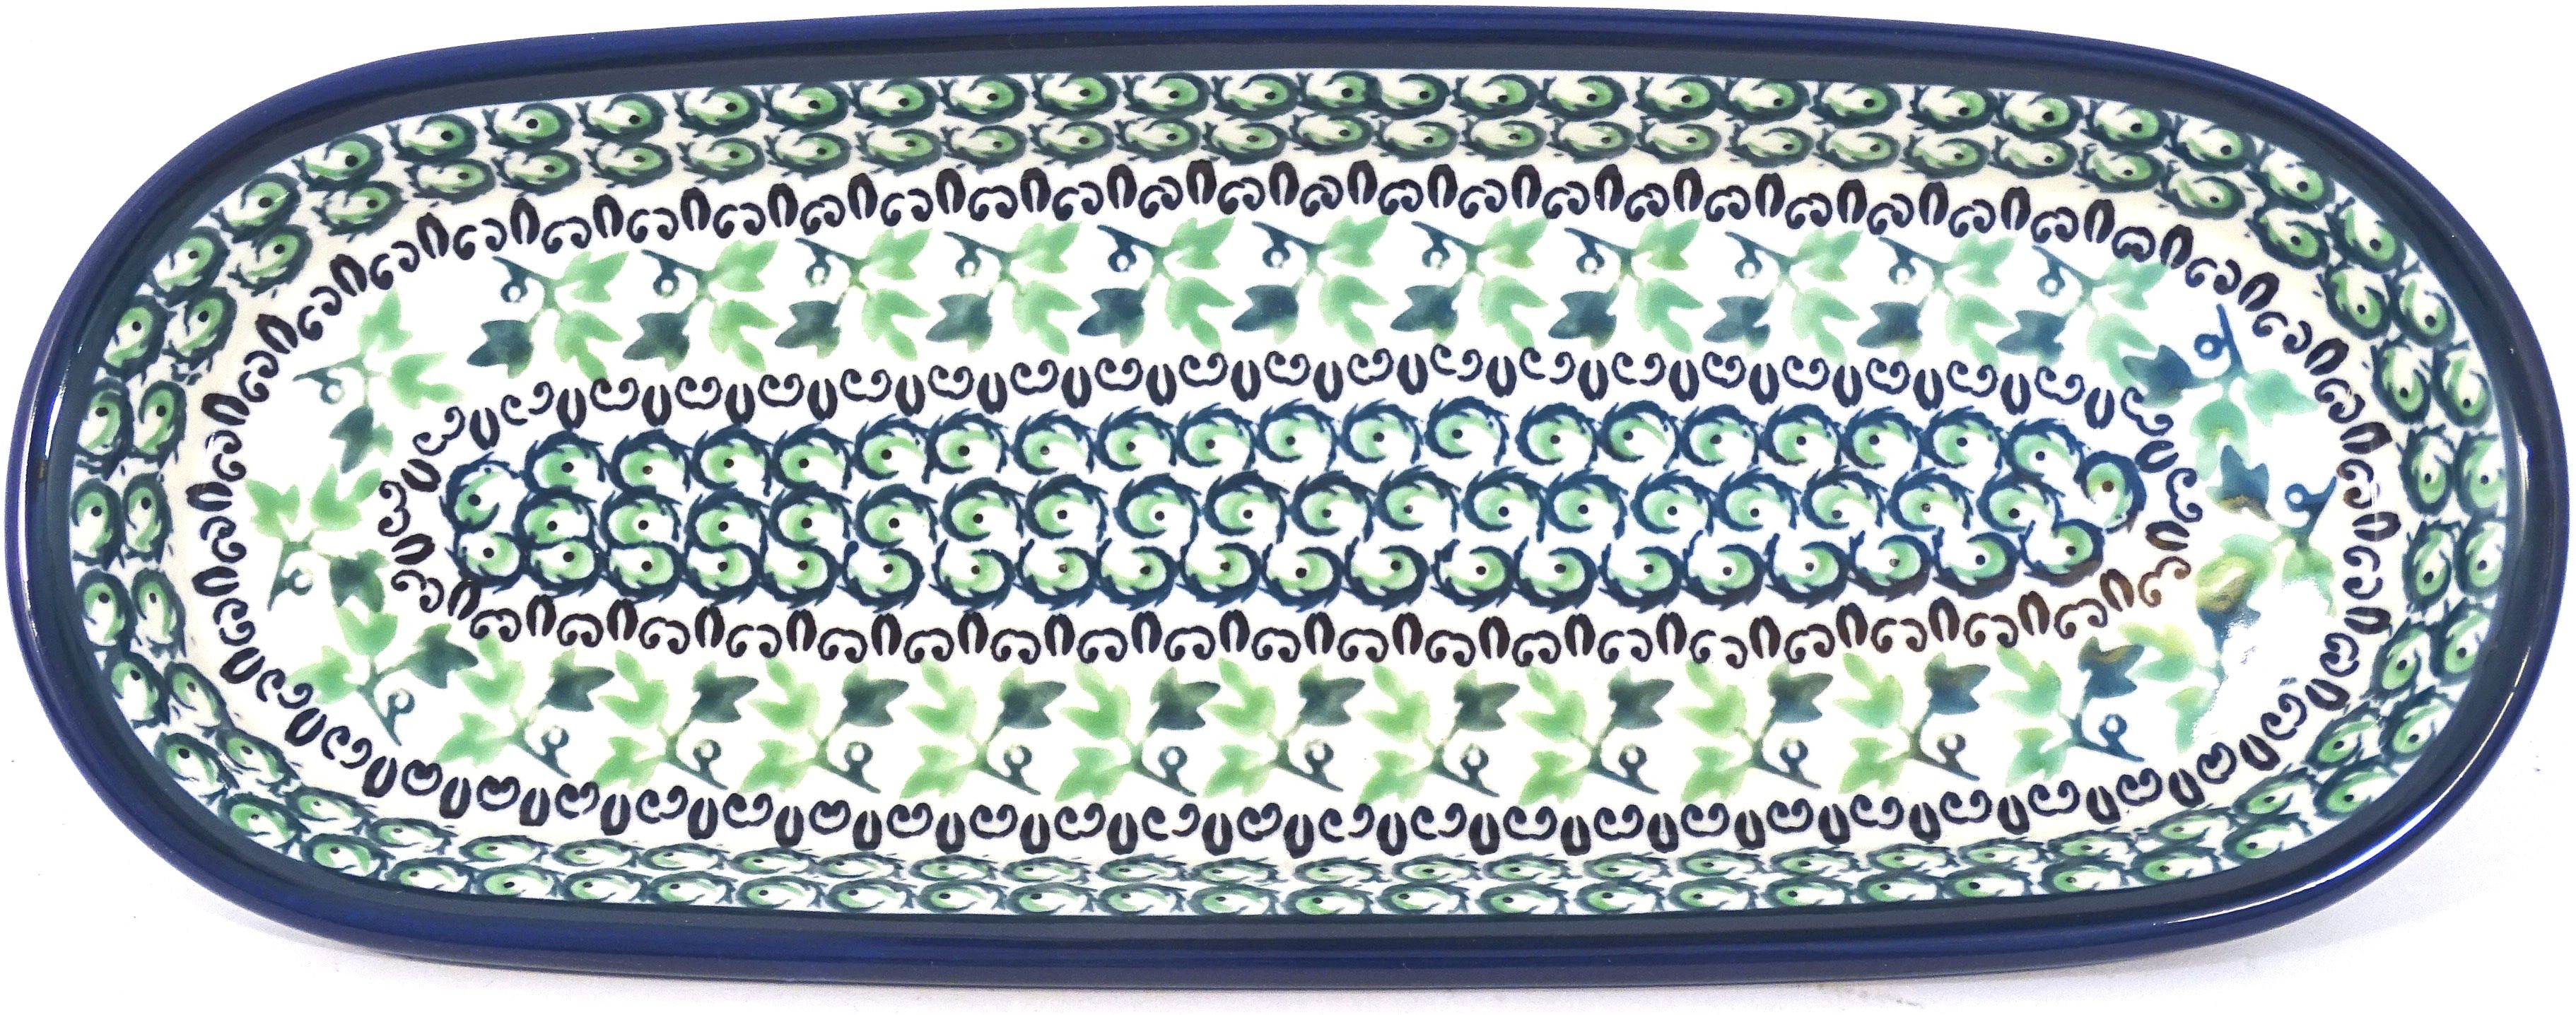 "Pottery Avenue 11"" IVY Stoneware Serving Tray 